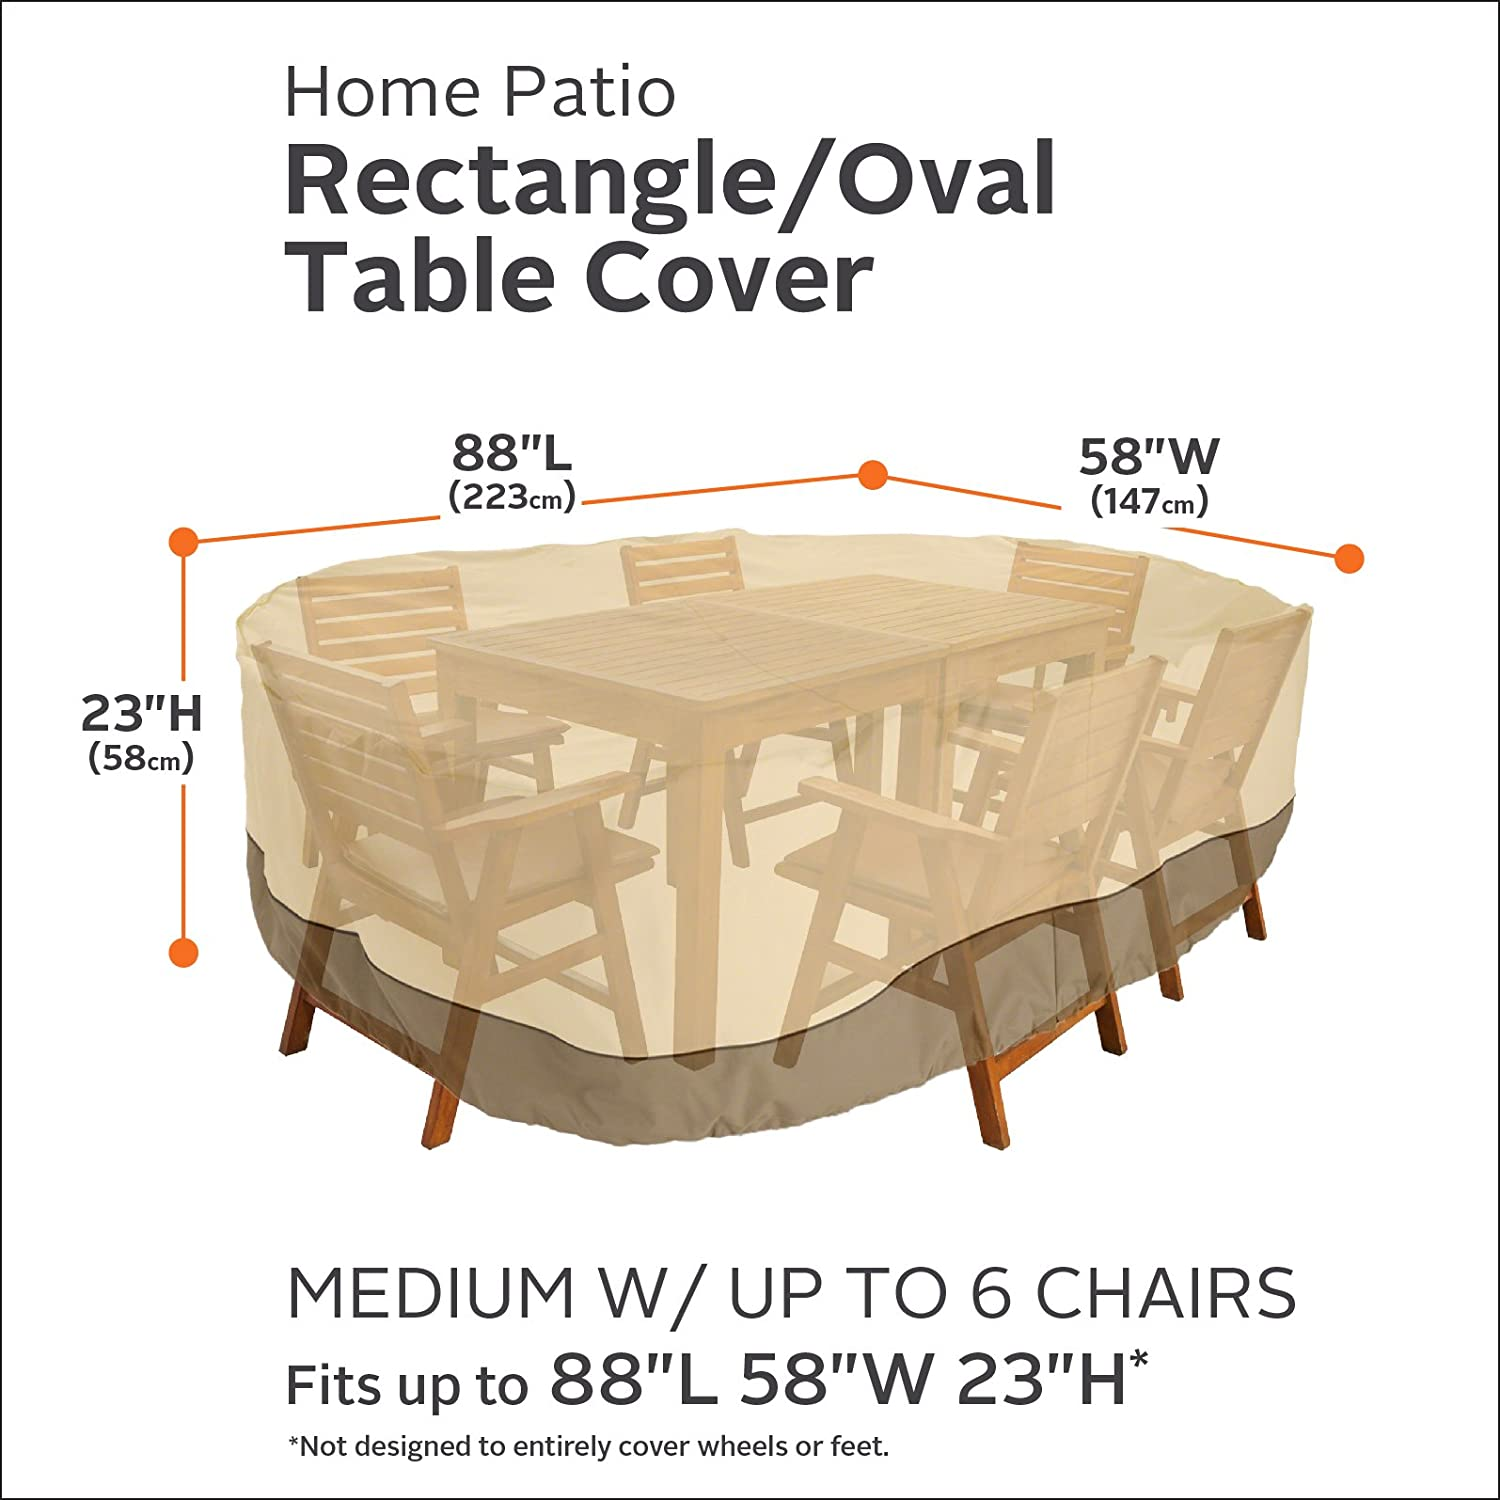 Charmant Amazon.com : Classic Accessories Veranda Rectangular/Oval Patio Table U0026  Chair Set Cover   Durable And Water Resistant Outdoor Furniture Cover, ...